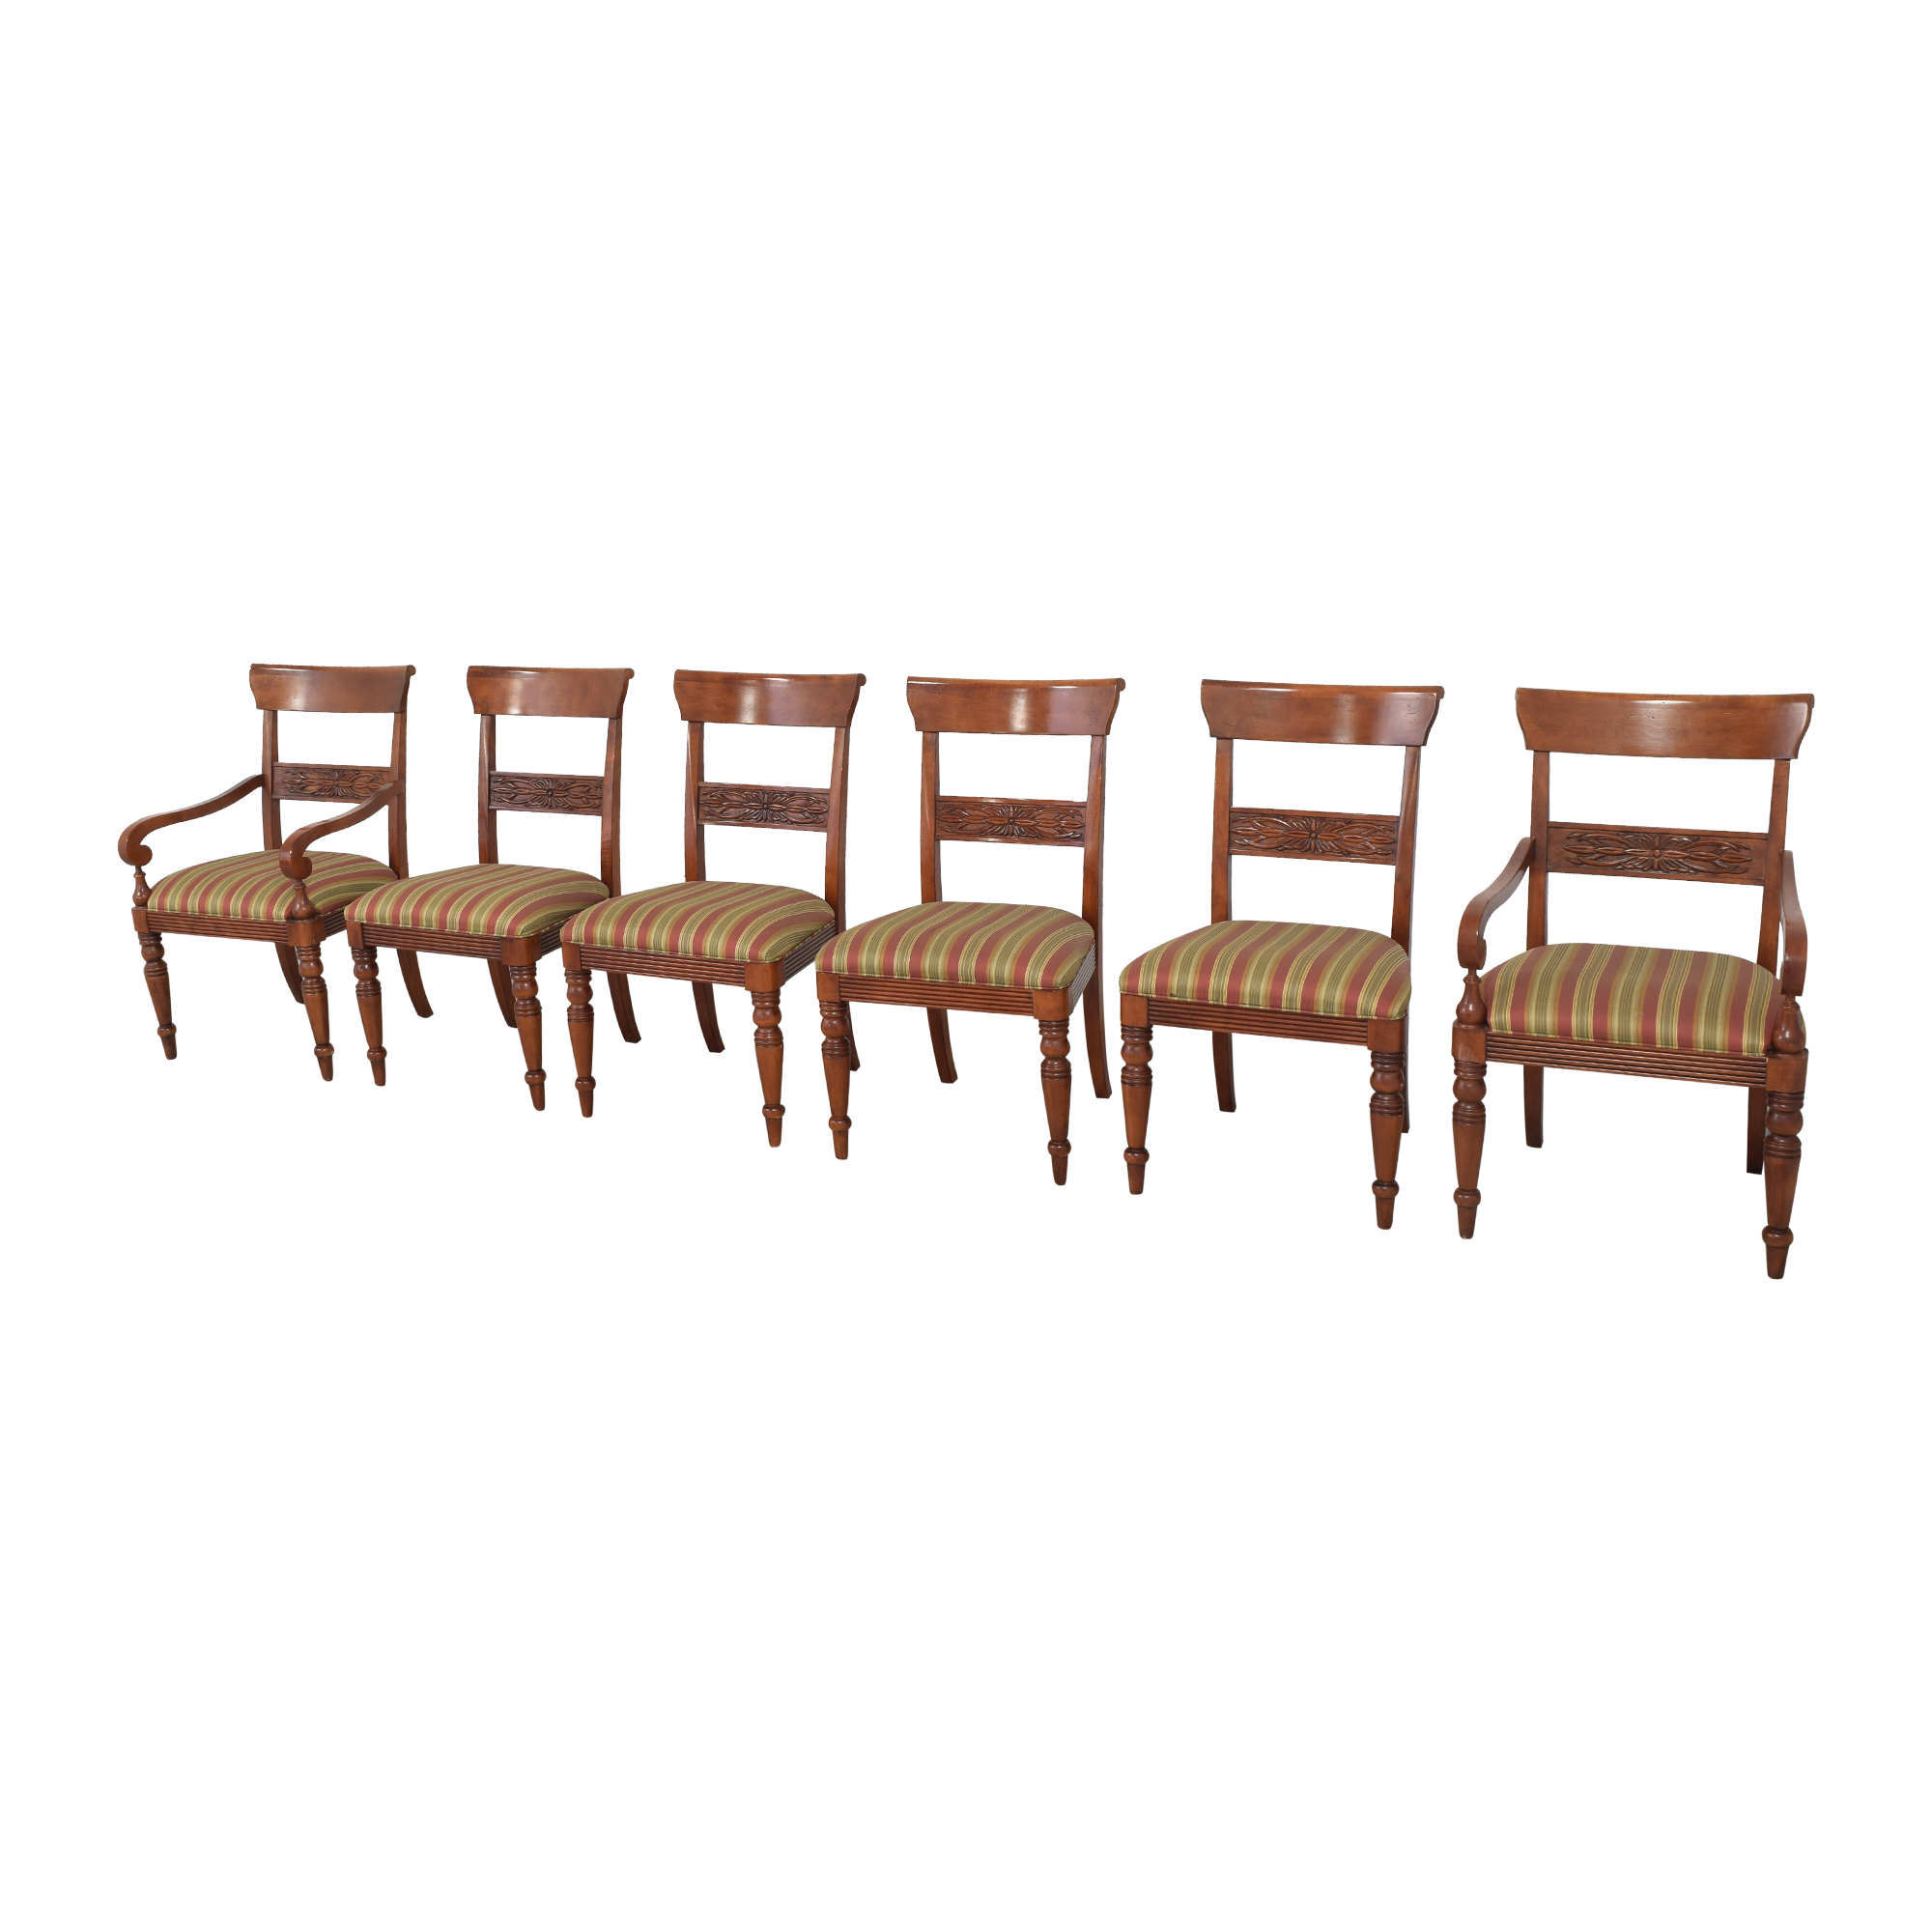 Ethan Allen Ethan Allen British Classics Dining Chairs second hand